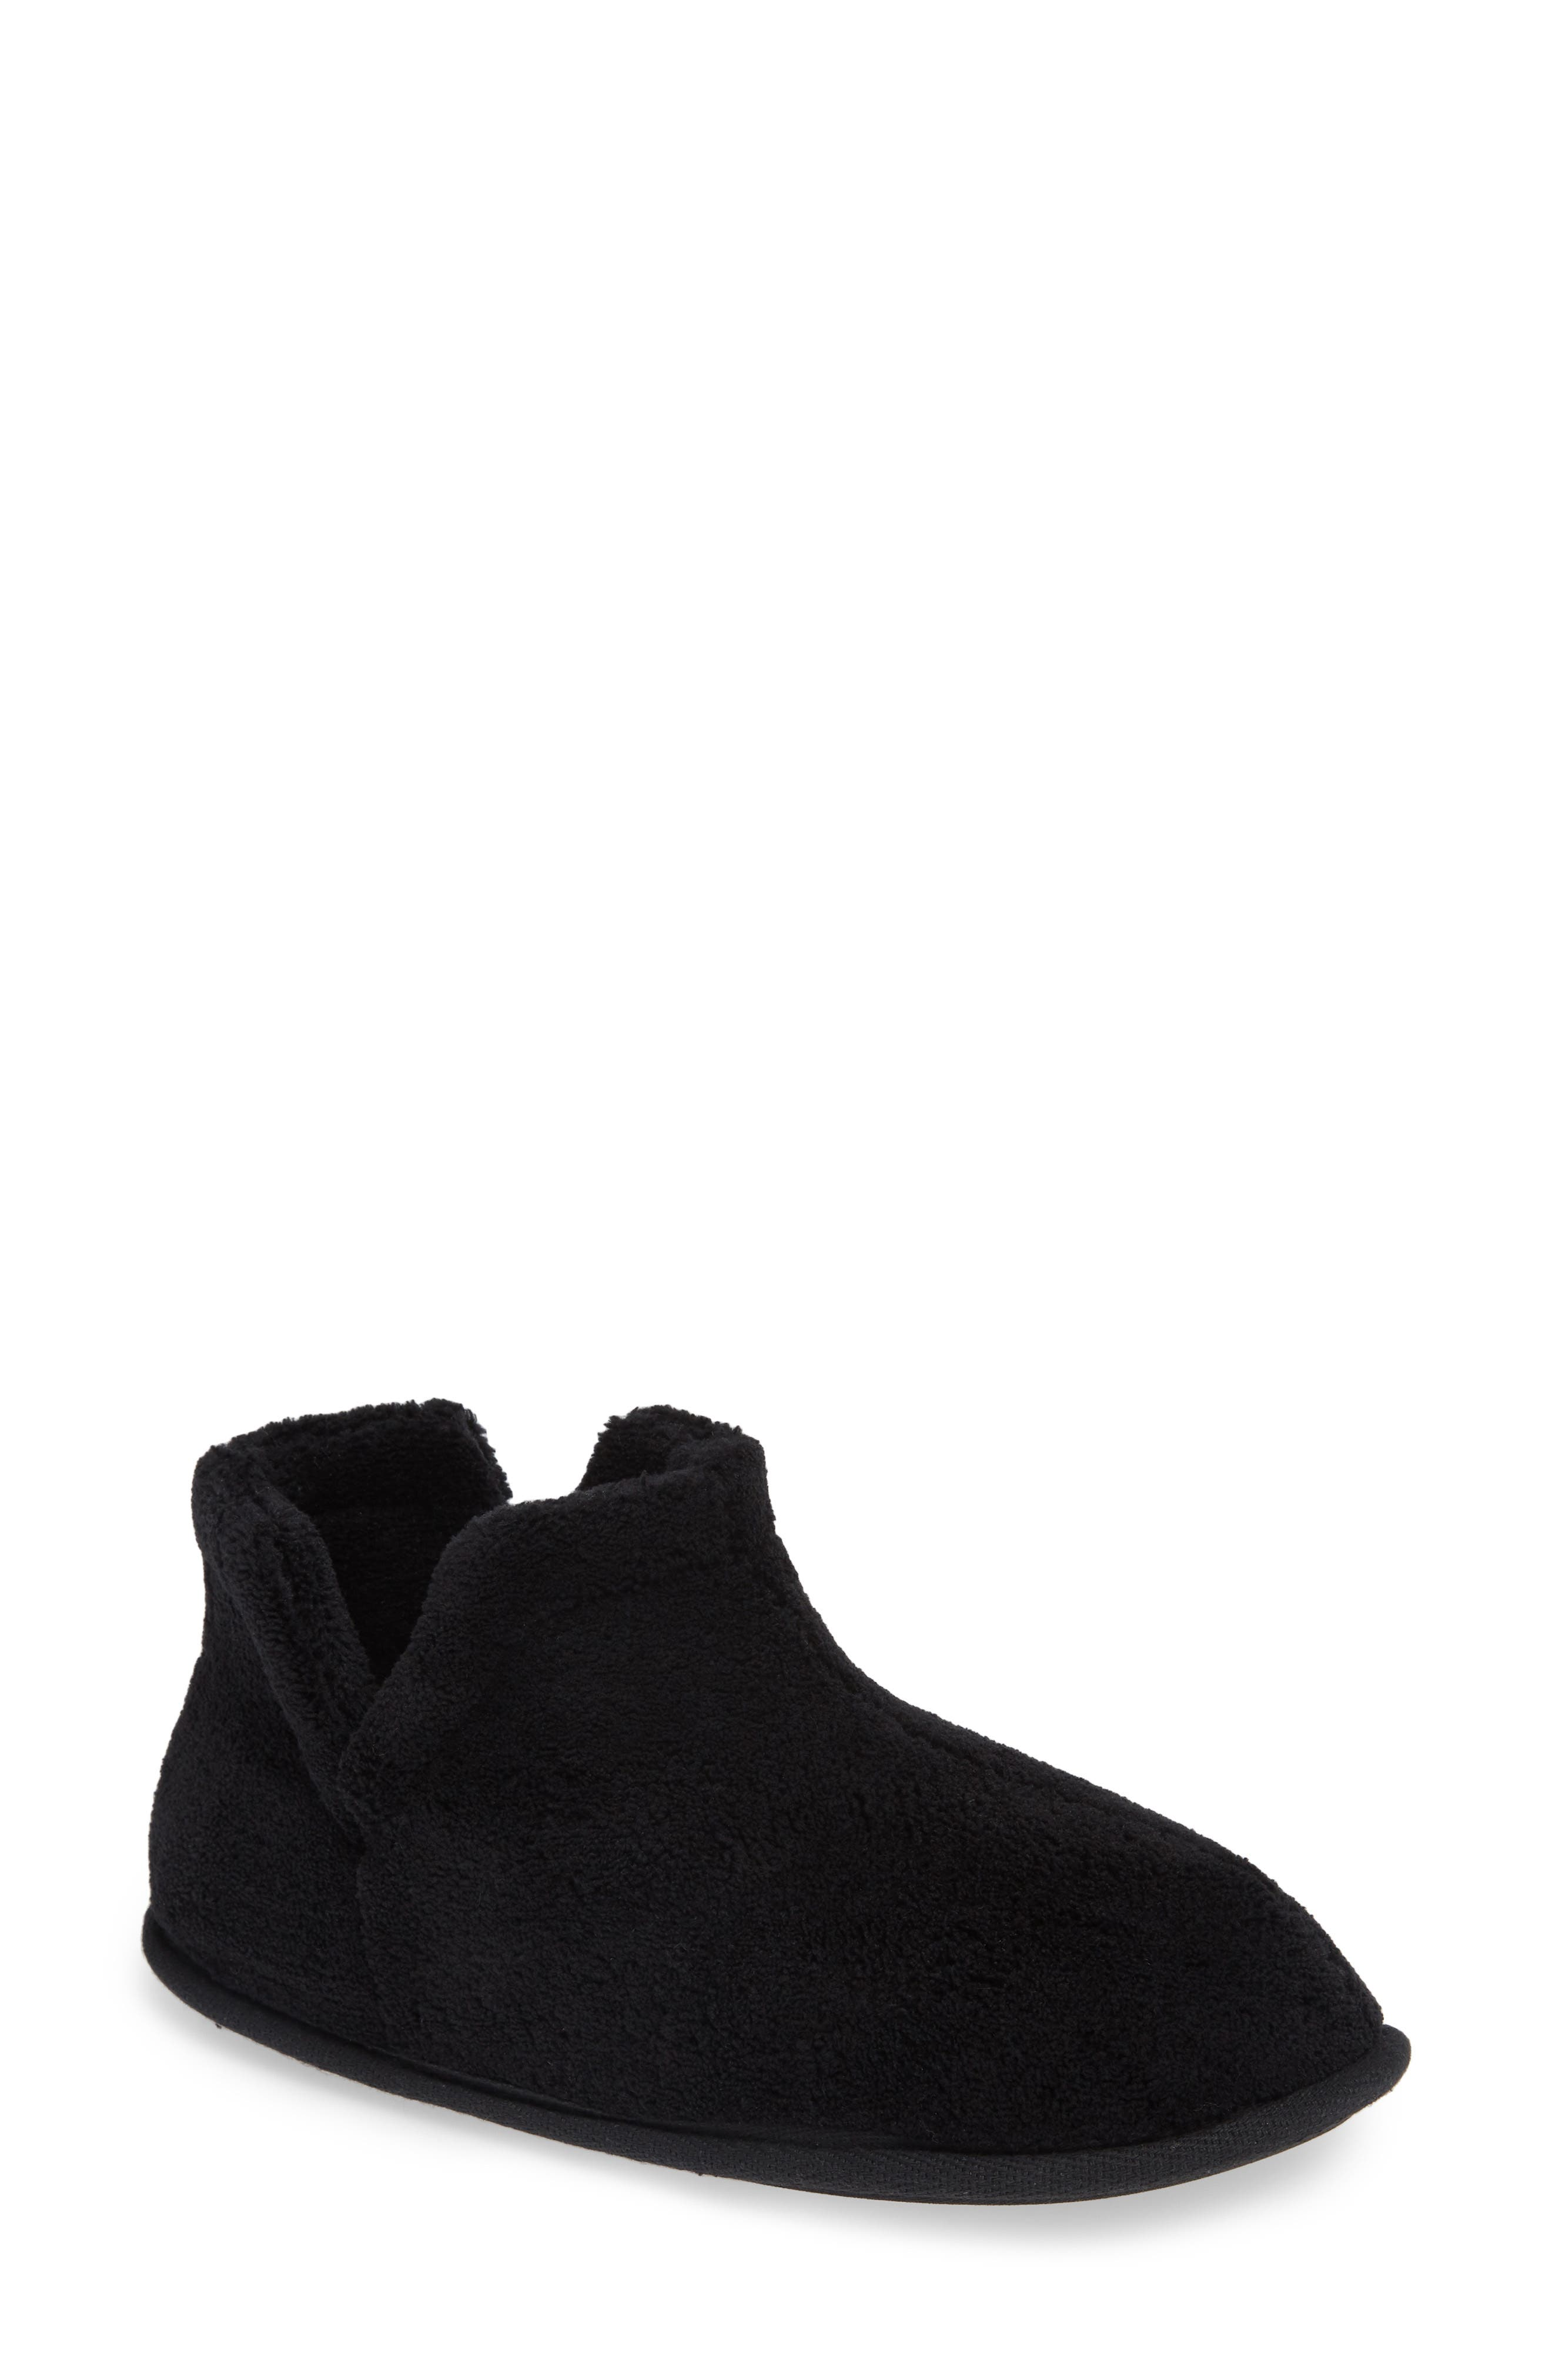 Evalyn Slipper Bootie,                         Main,                         color, BLACK FABRIC